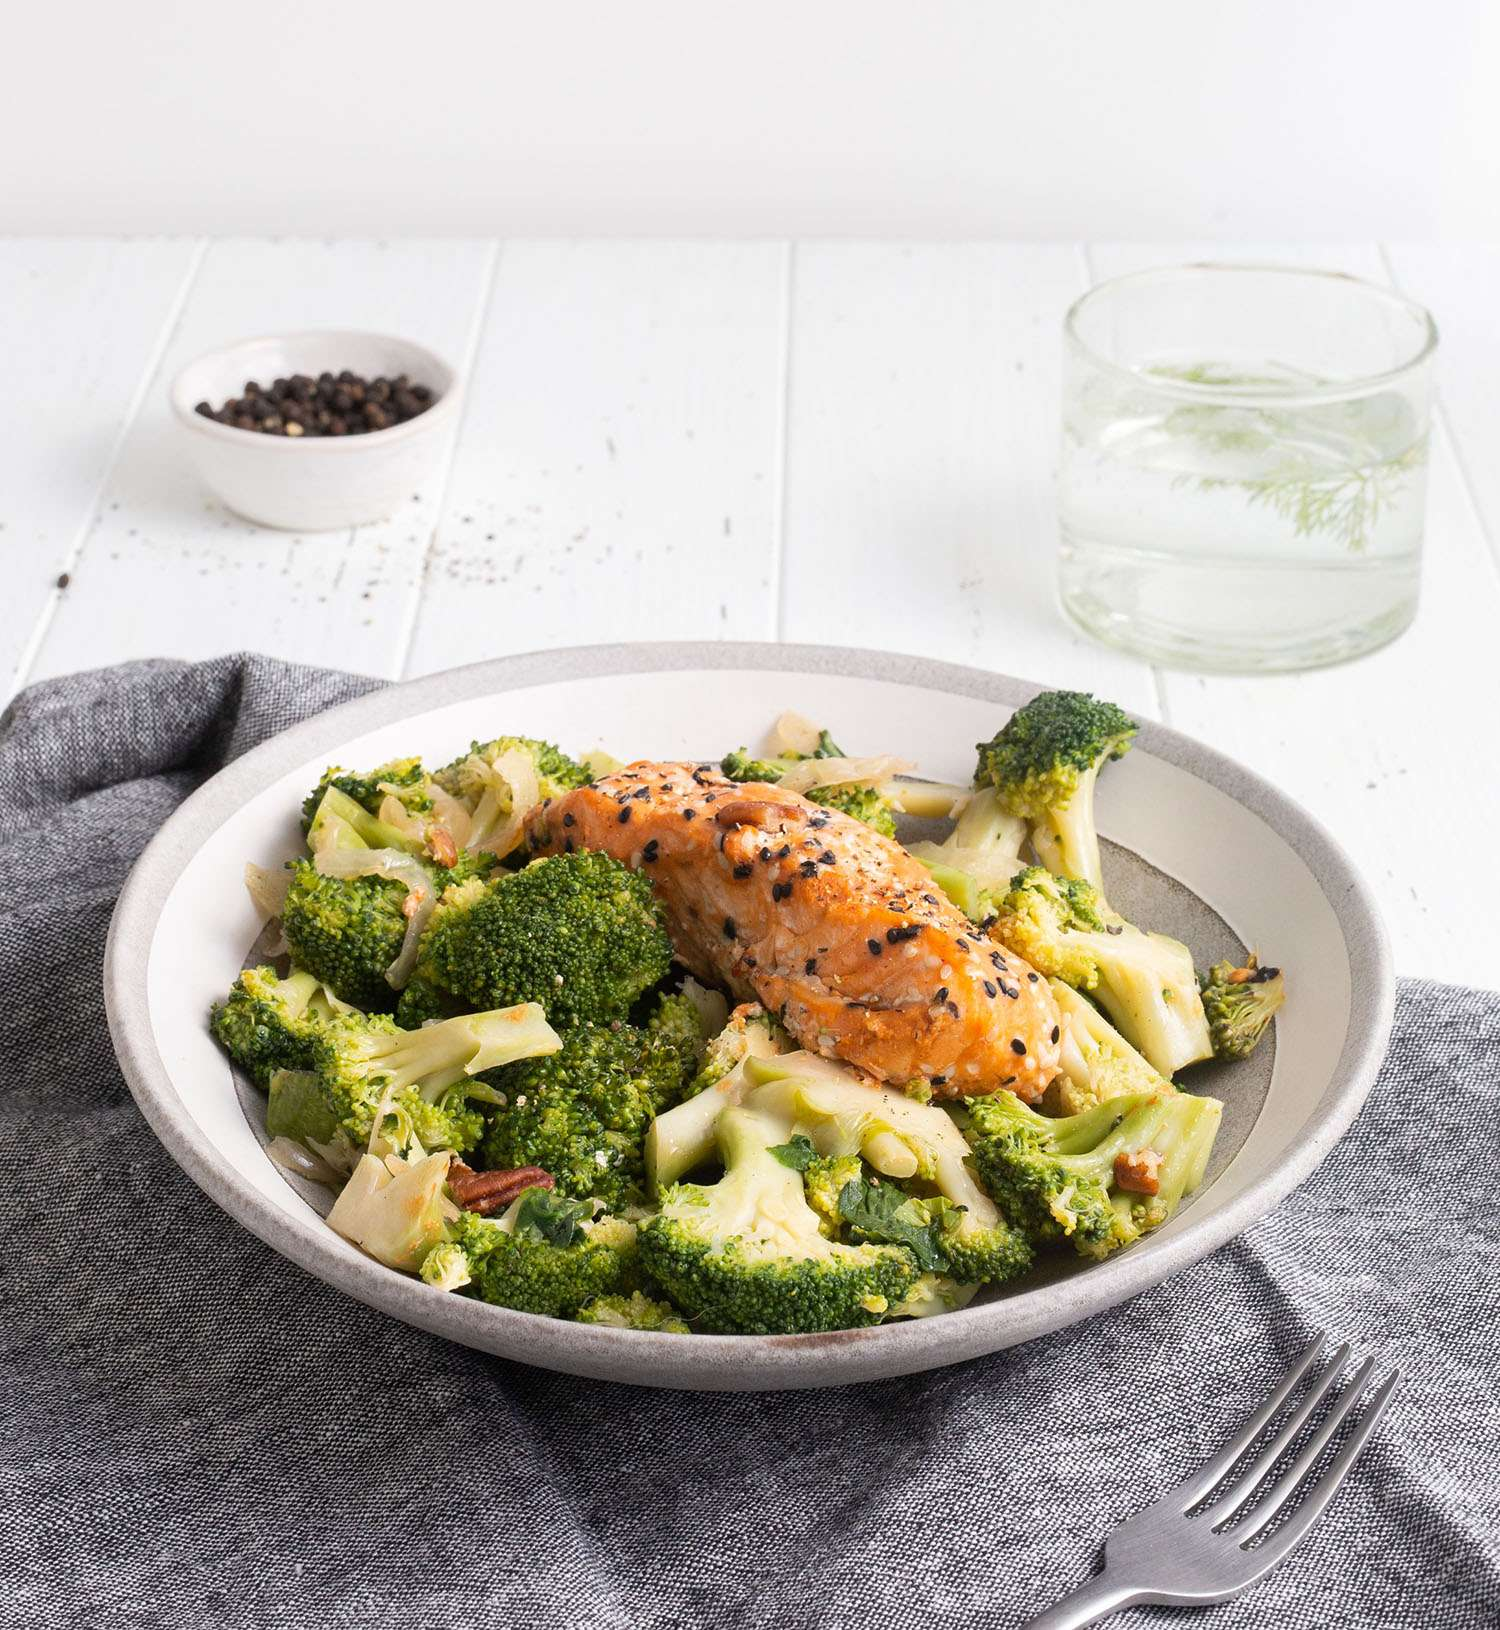 Prepared salmon broccoli meal